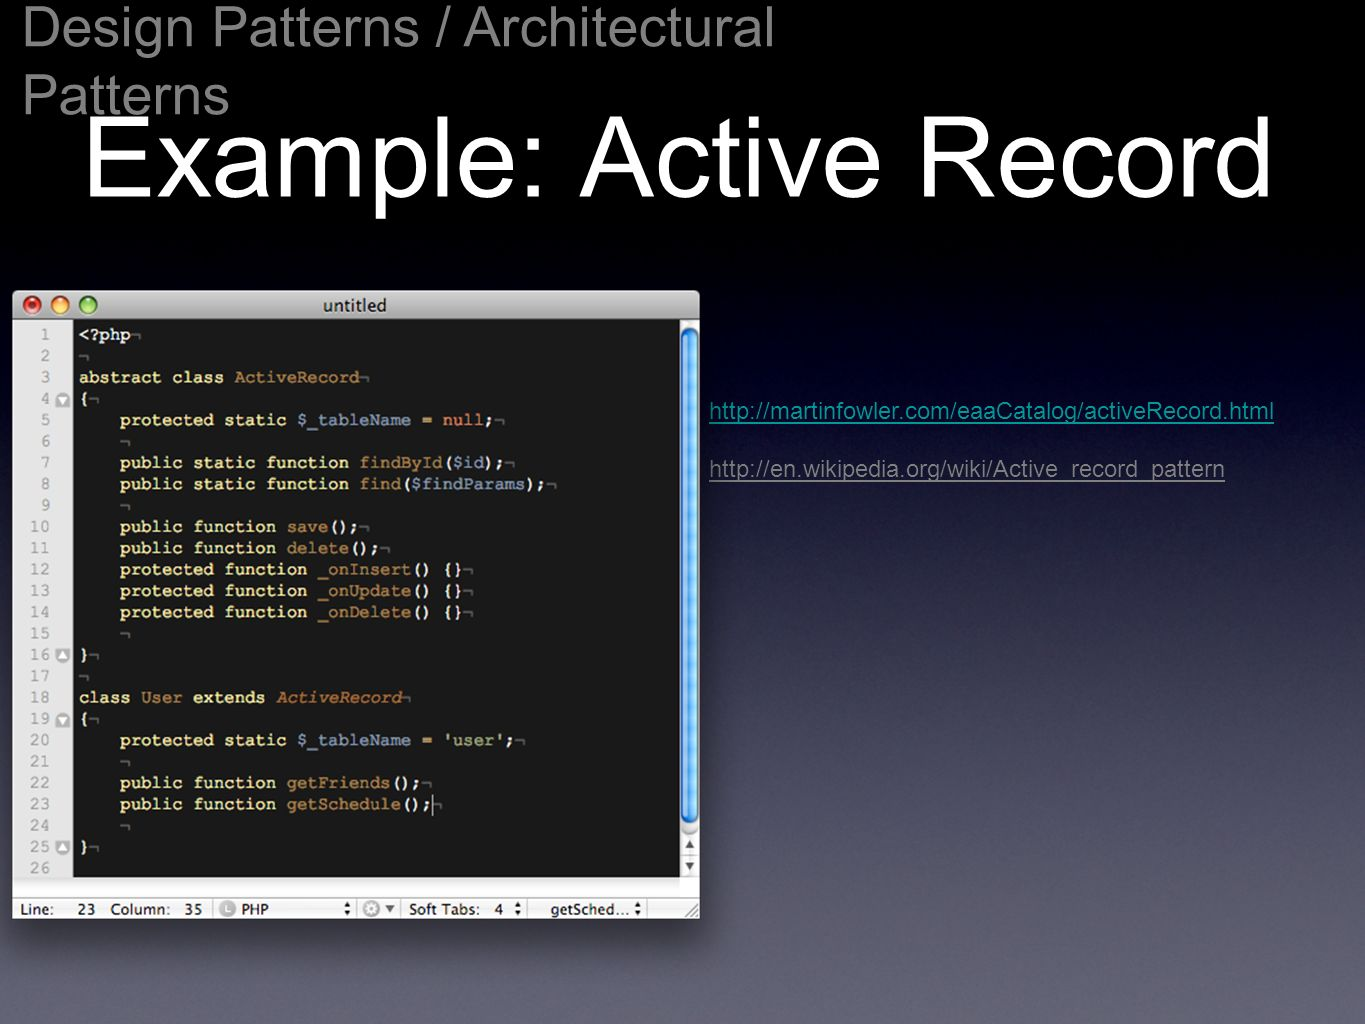 Example: Active Record Design Patterns / Architectural Patterns http://martinfowler.com/eaaCatalog/activeRecord.html http://en.wikipedia.org/wiki/Active_record_pattern